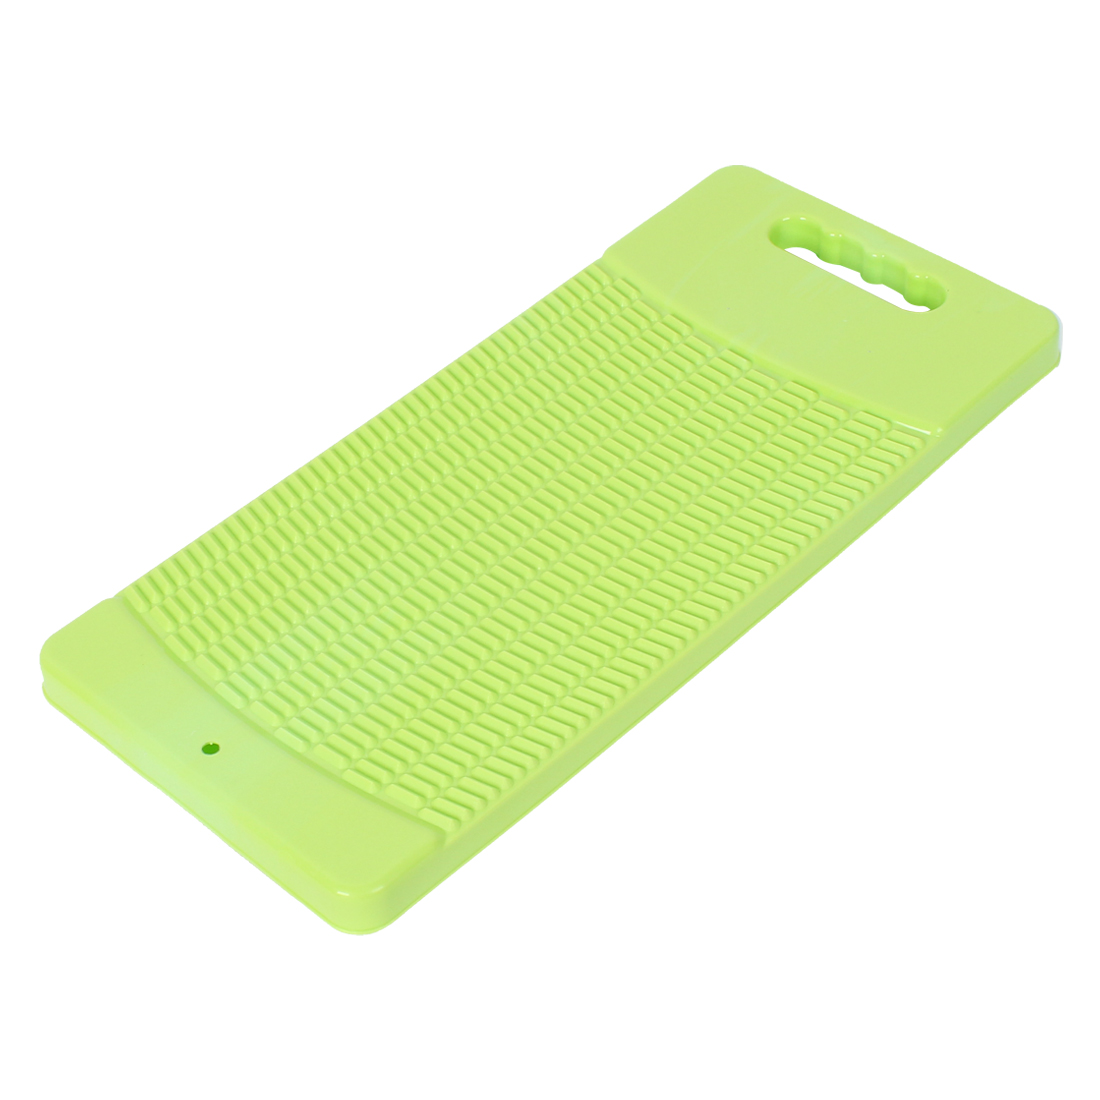 Plastic Rectangle Shaped Washing Clothes Laundry Board Washboard Yellow Green 43cm Long